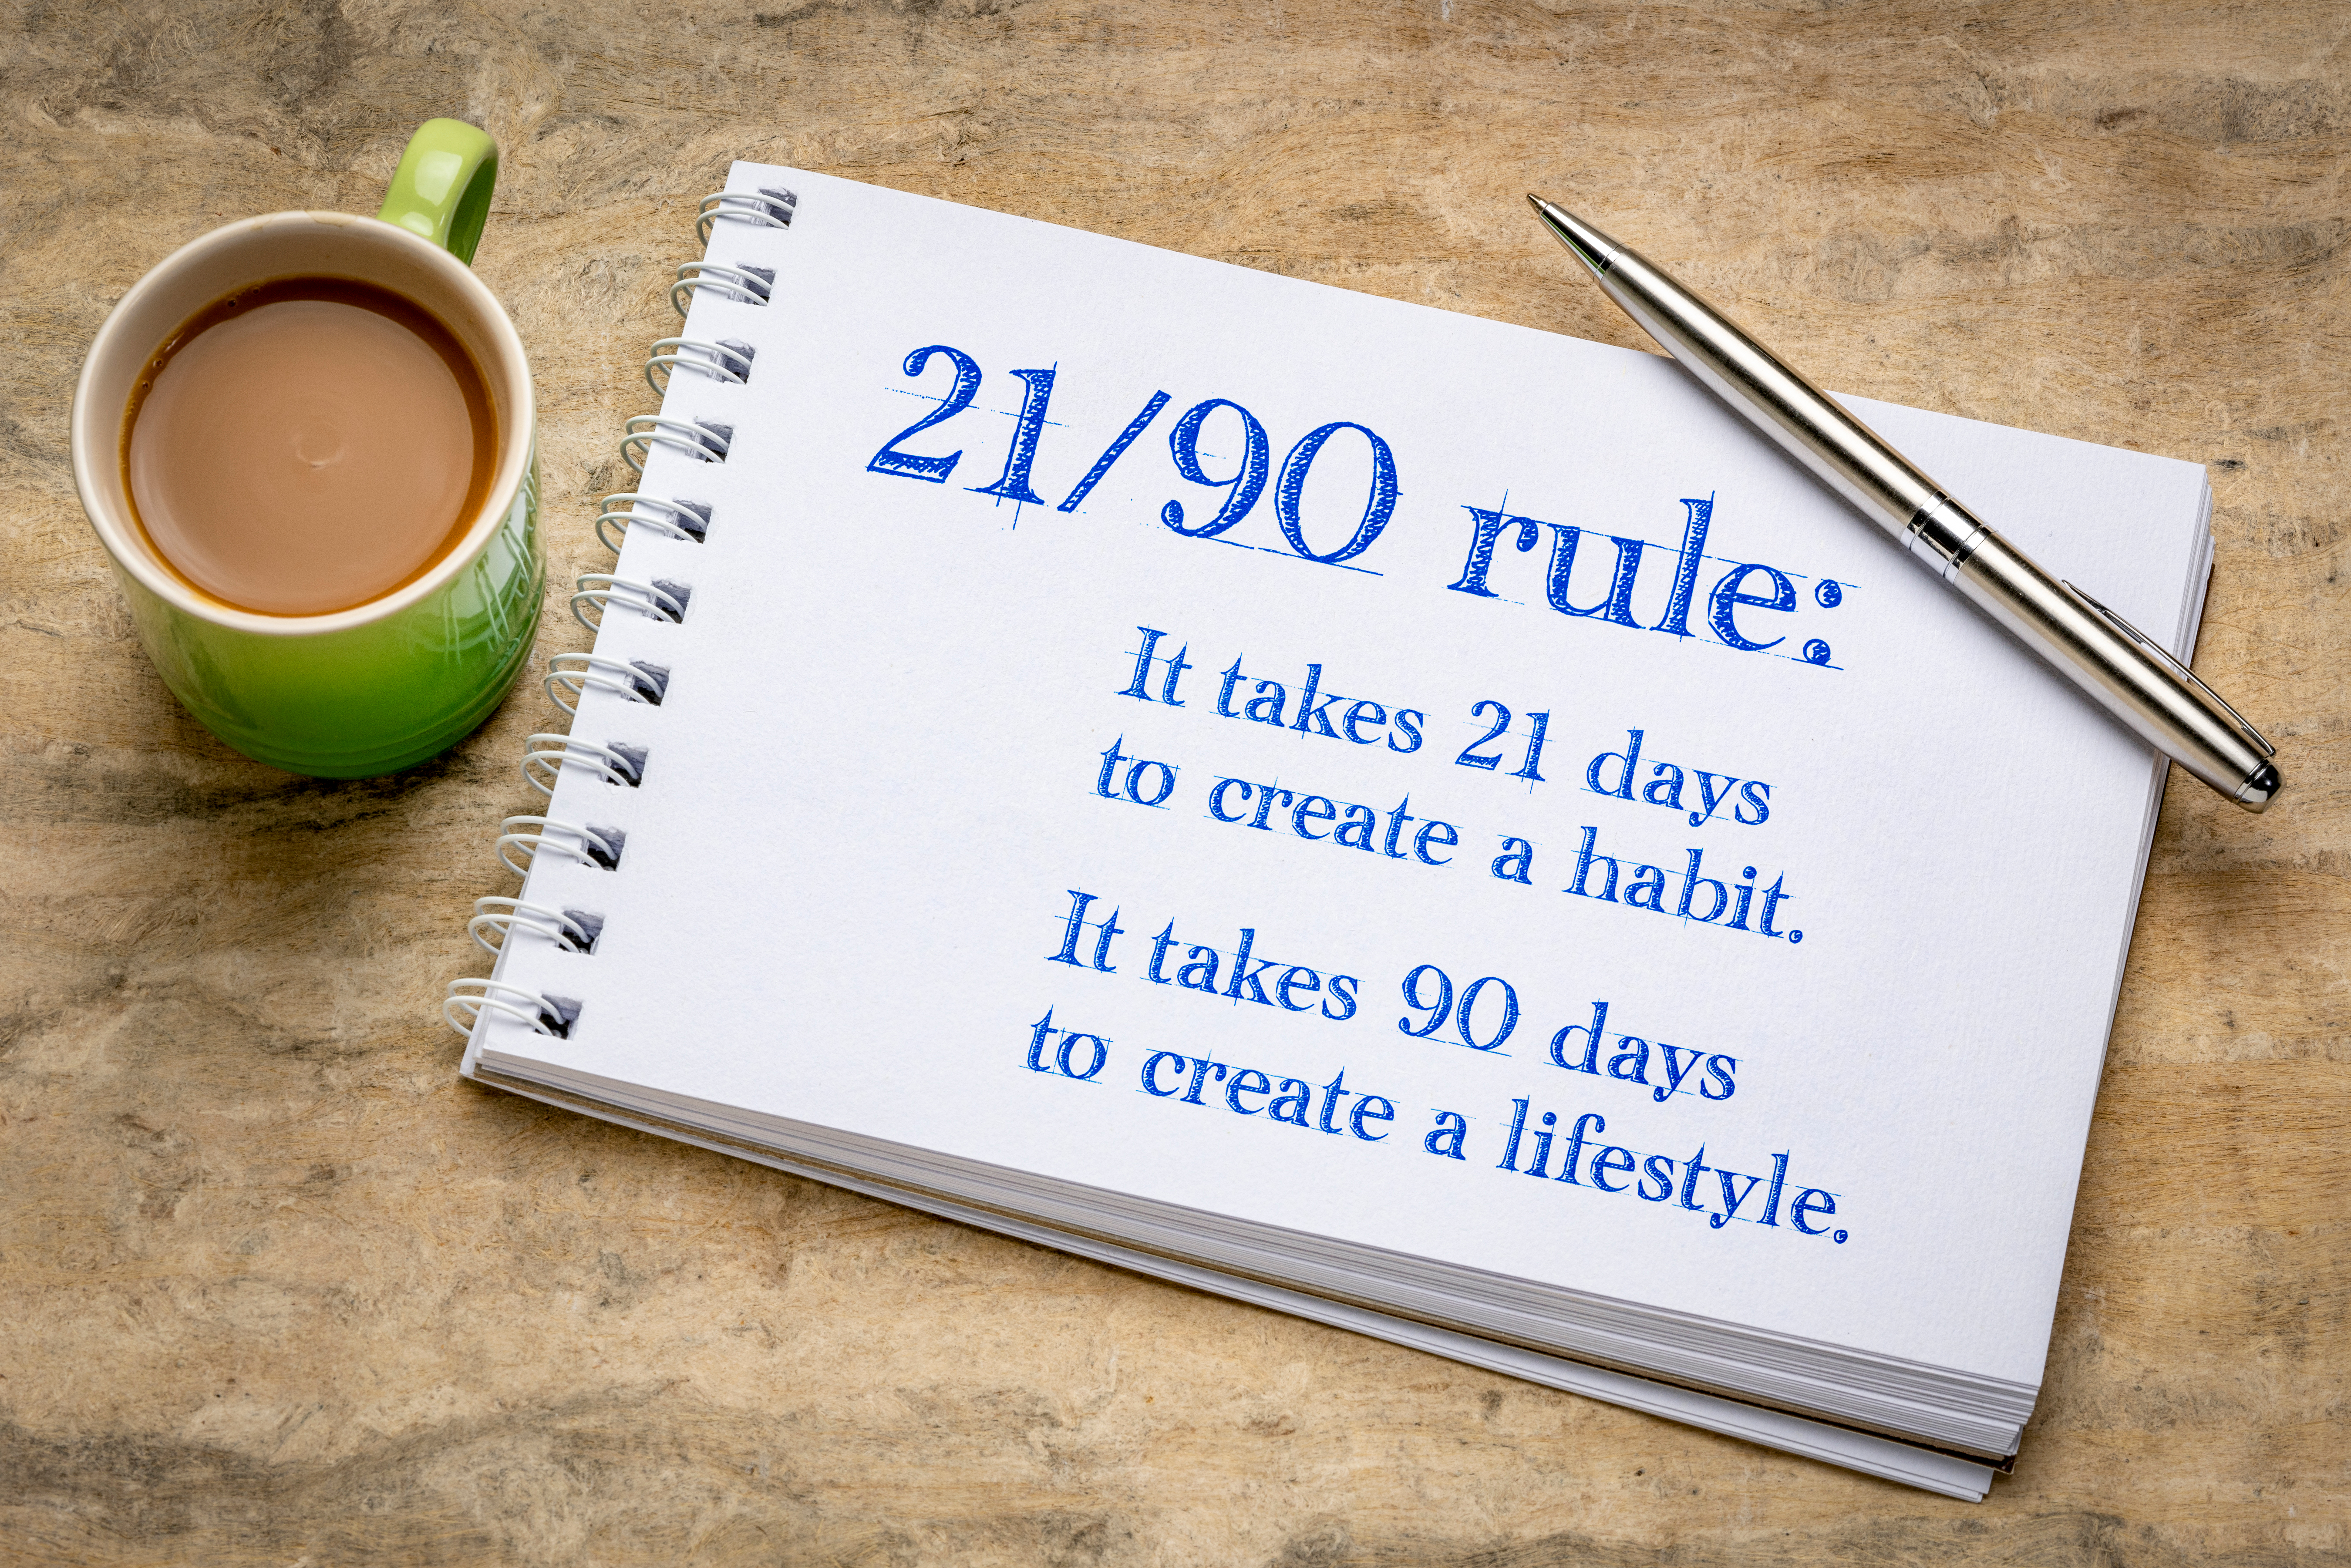 21 days to habit, 90 to new lifestyle!